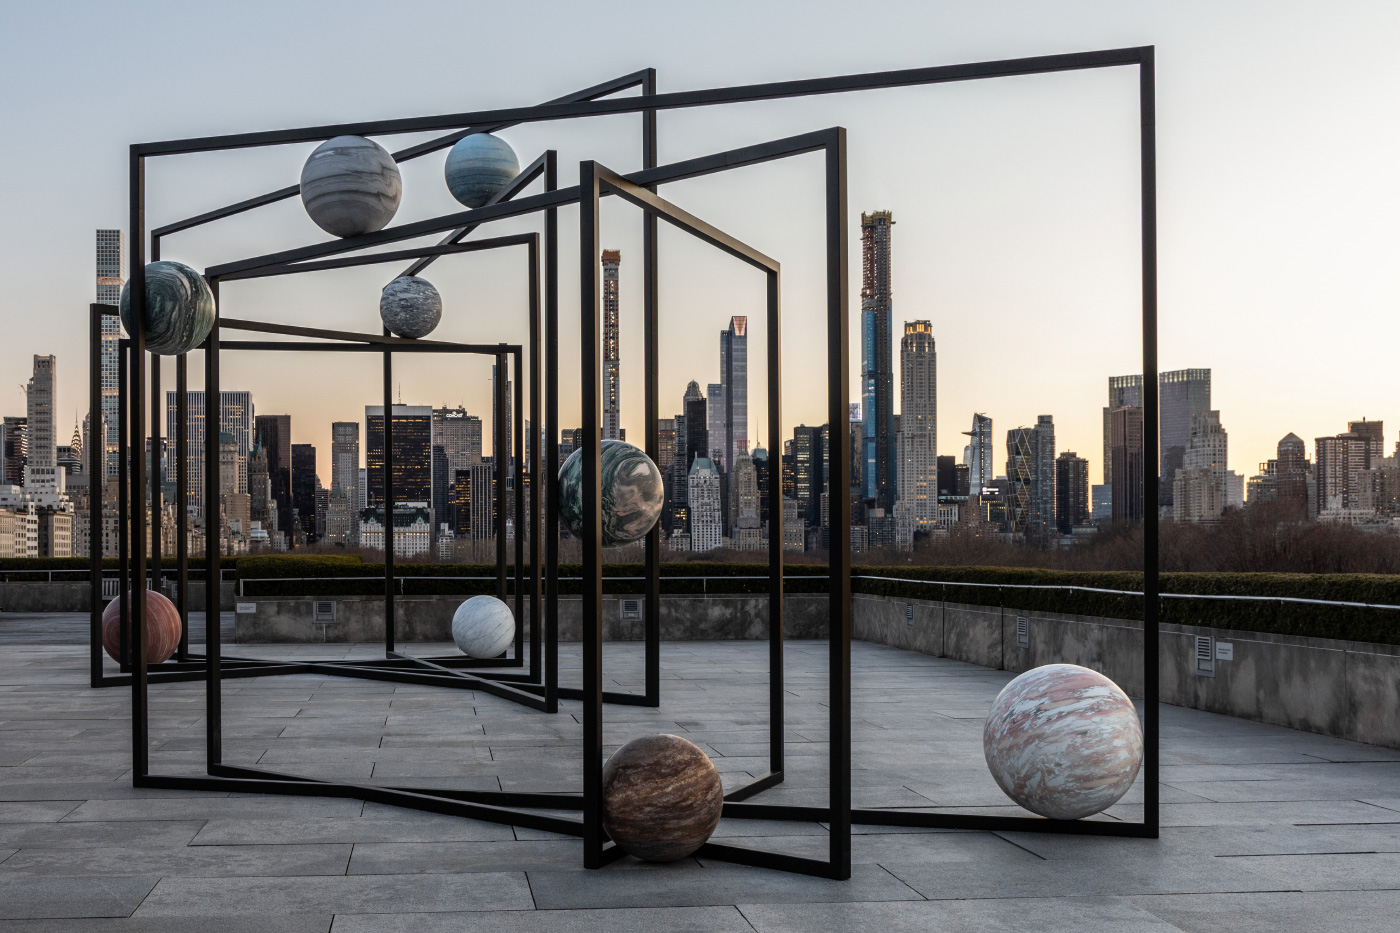 Photo of large stone spheres of different colors, suspended in black steel frames, against the Manhattan skyline